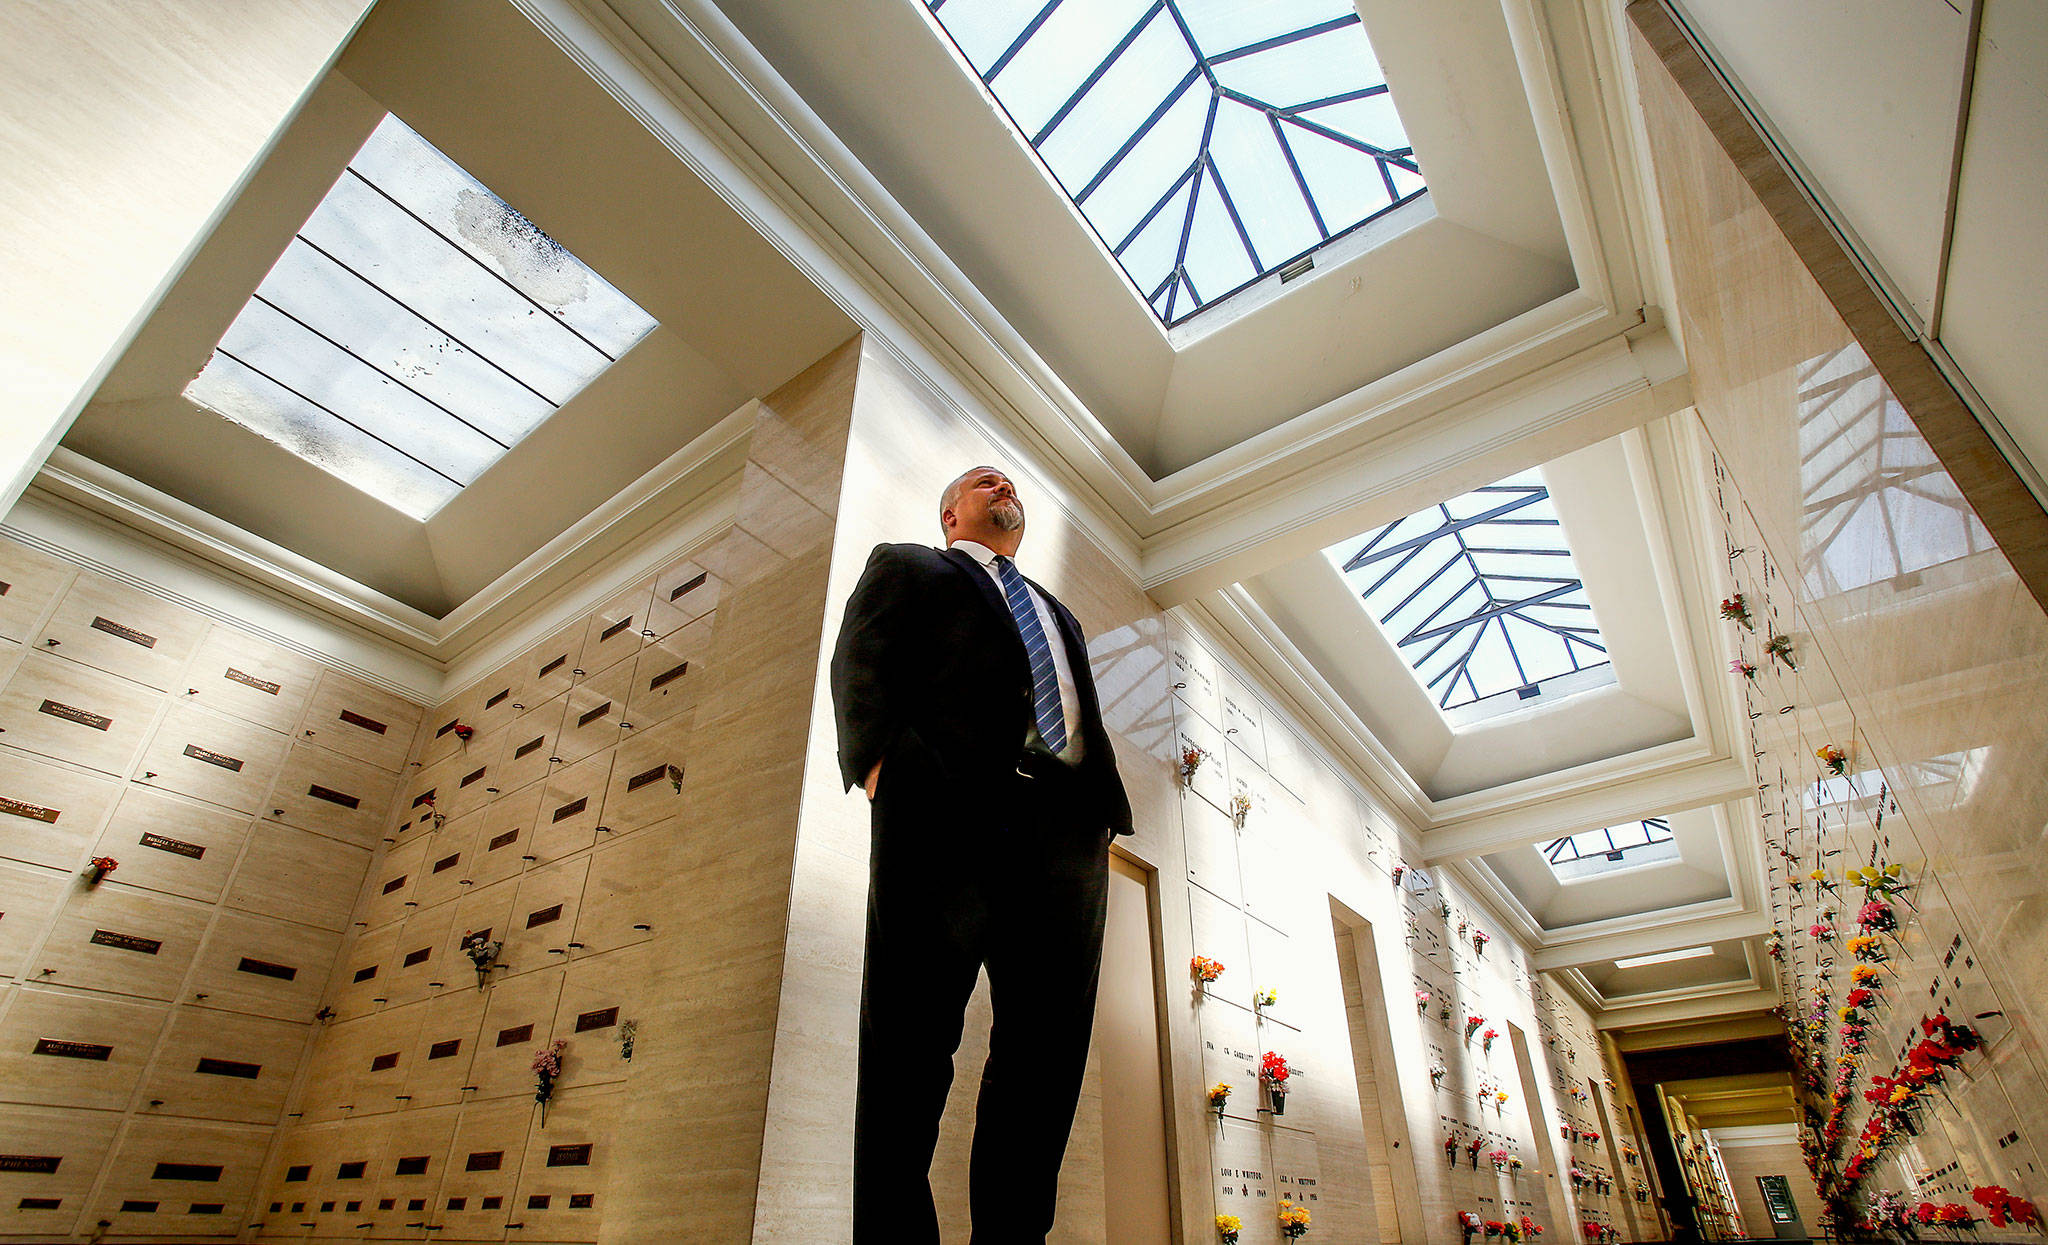 Pete Cameron, general manager of Evergreen Funeral Home and Cemetery watches over View Crest Abbey Mausoleum, where some of his ancestors are entombed. The interior, with skylights and vast marble surfaces, is stunning. (Dan Bates / The Herald)